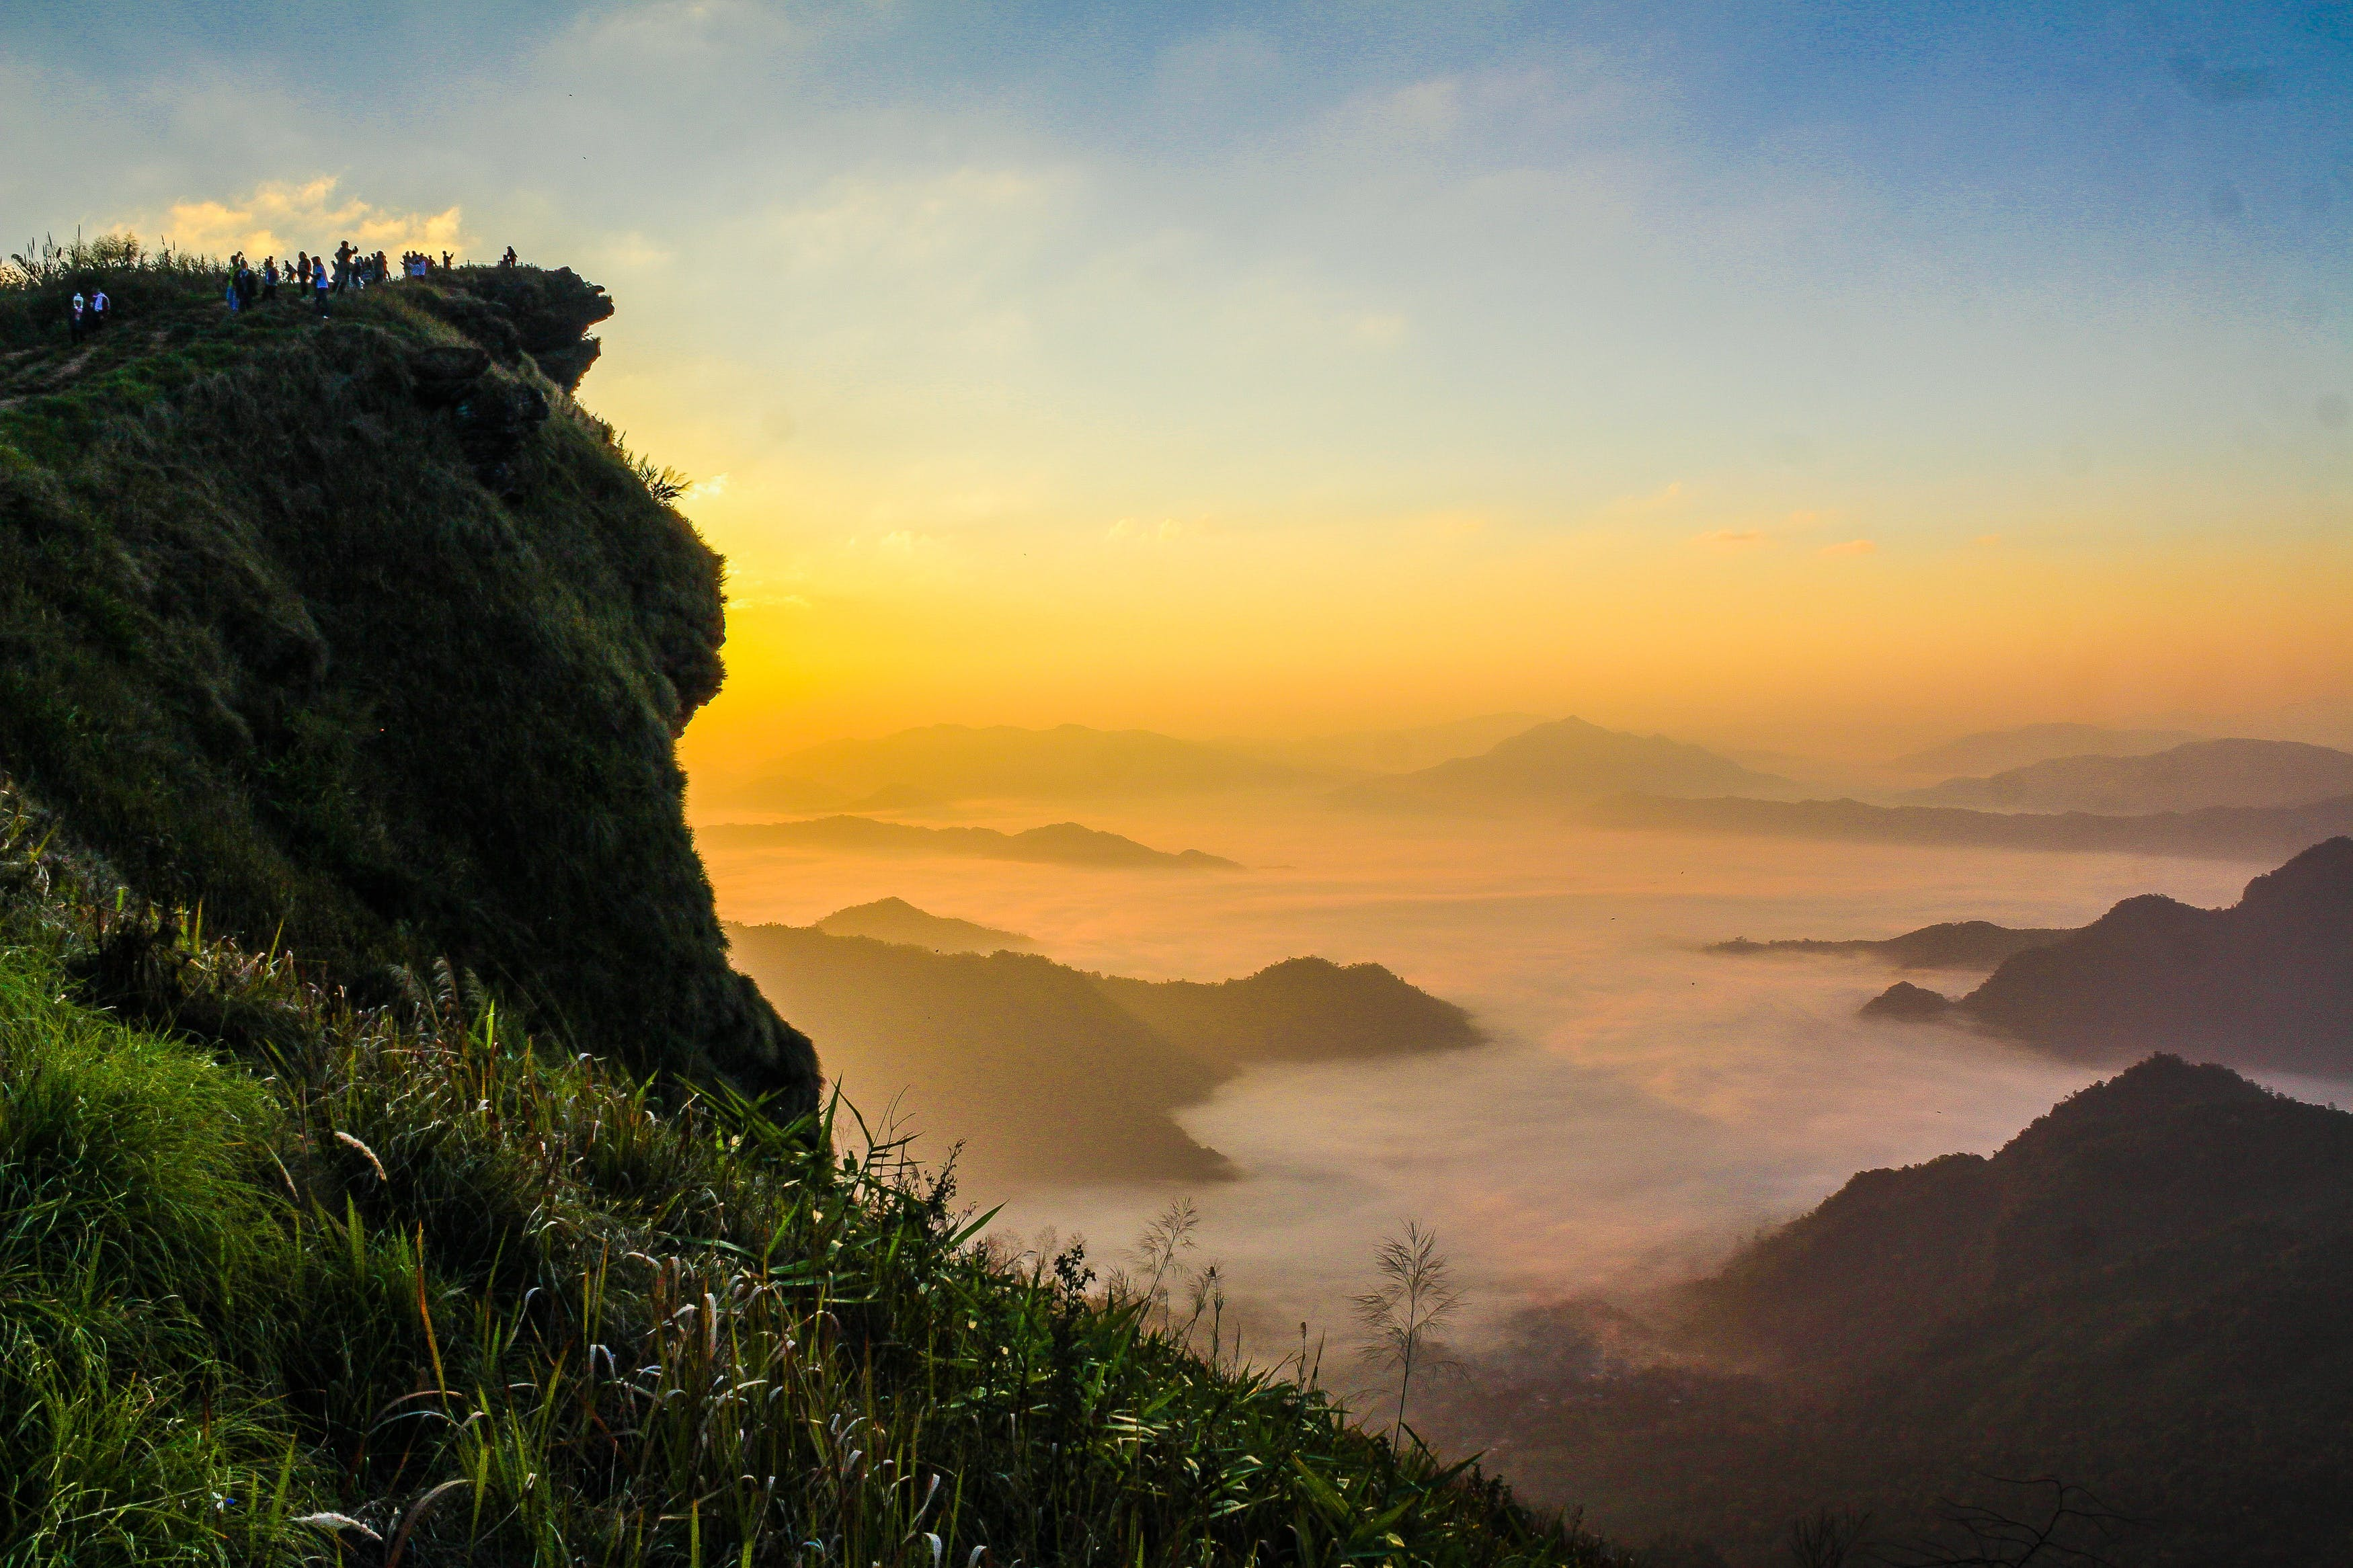 Landscape Photography of Cliff With Sea of Clouds during Golden Hour